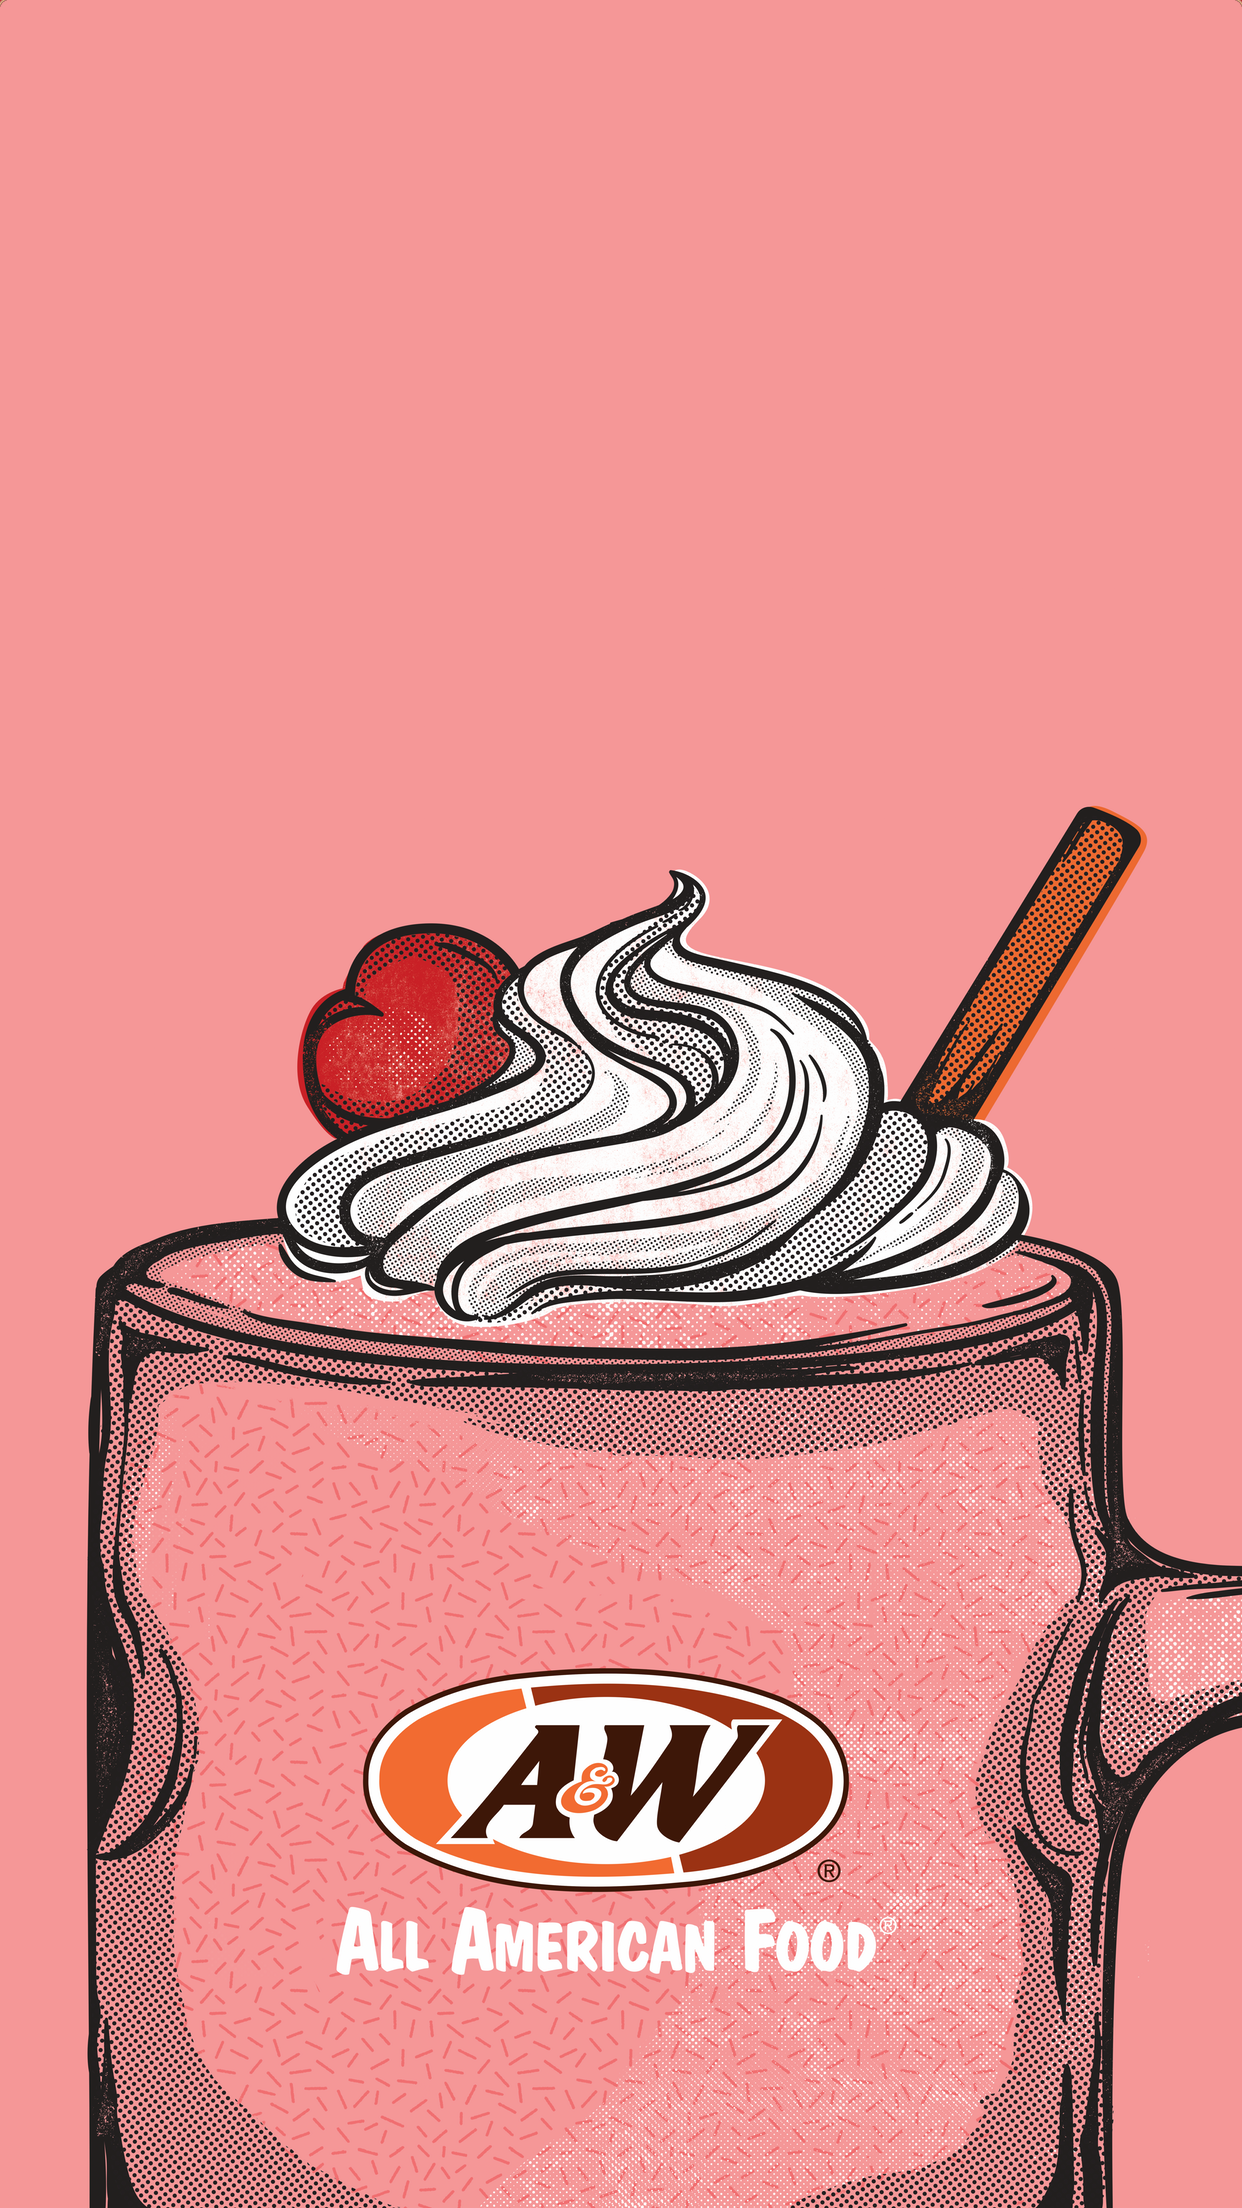 Strawberry shake on pink background